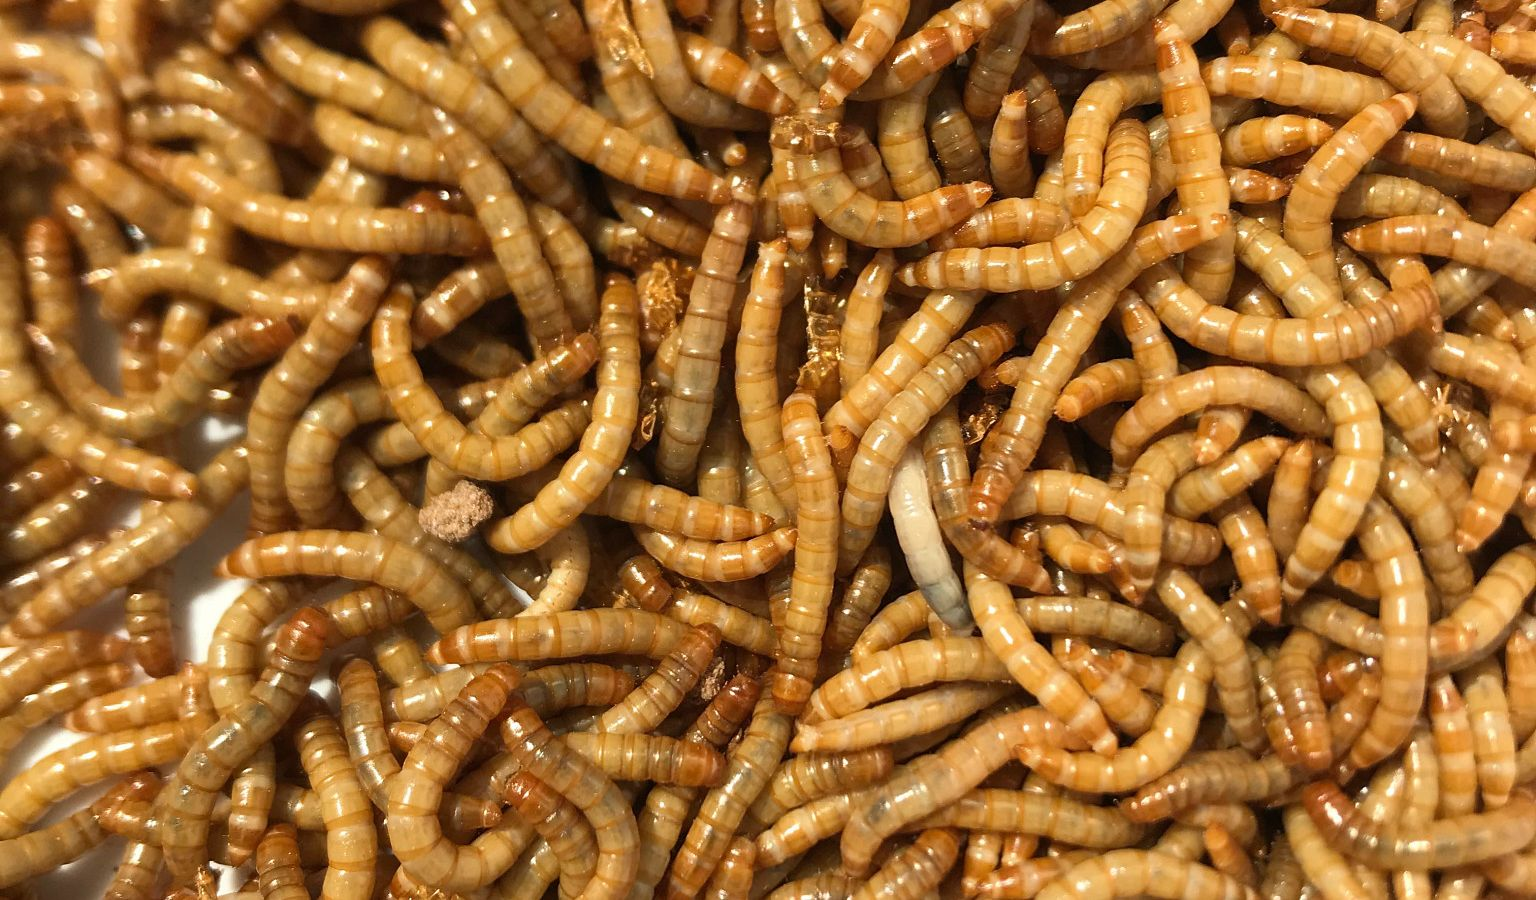 Yellow mealworms